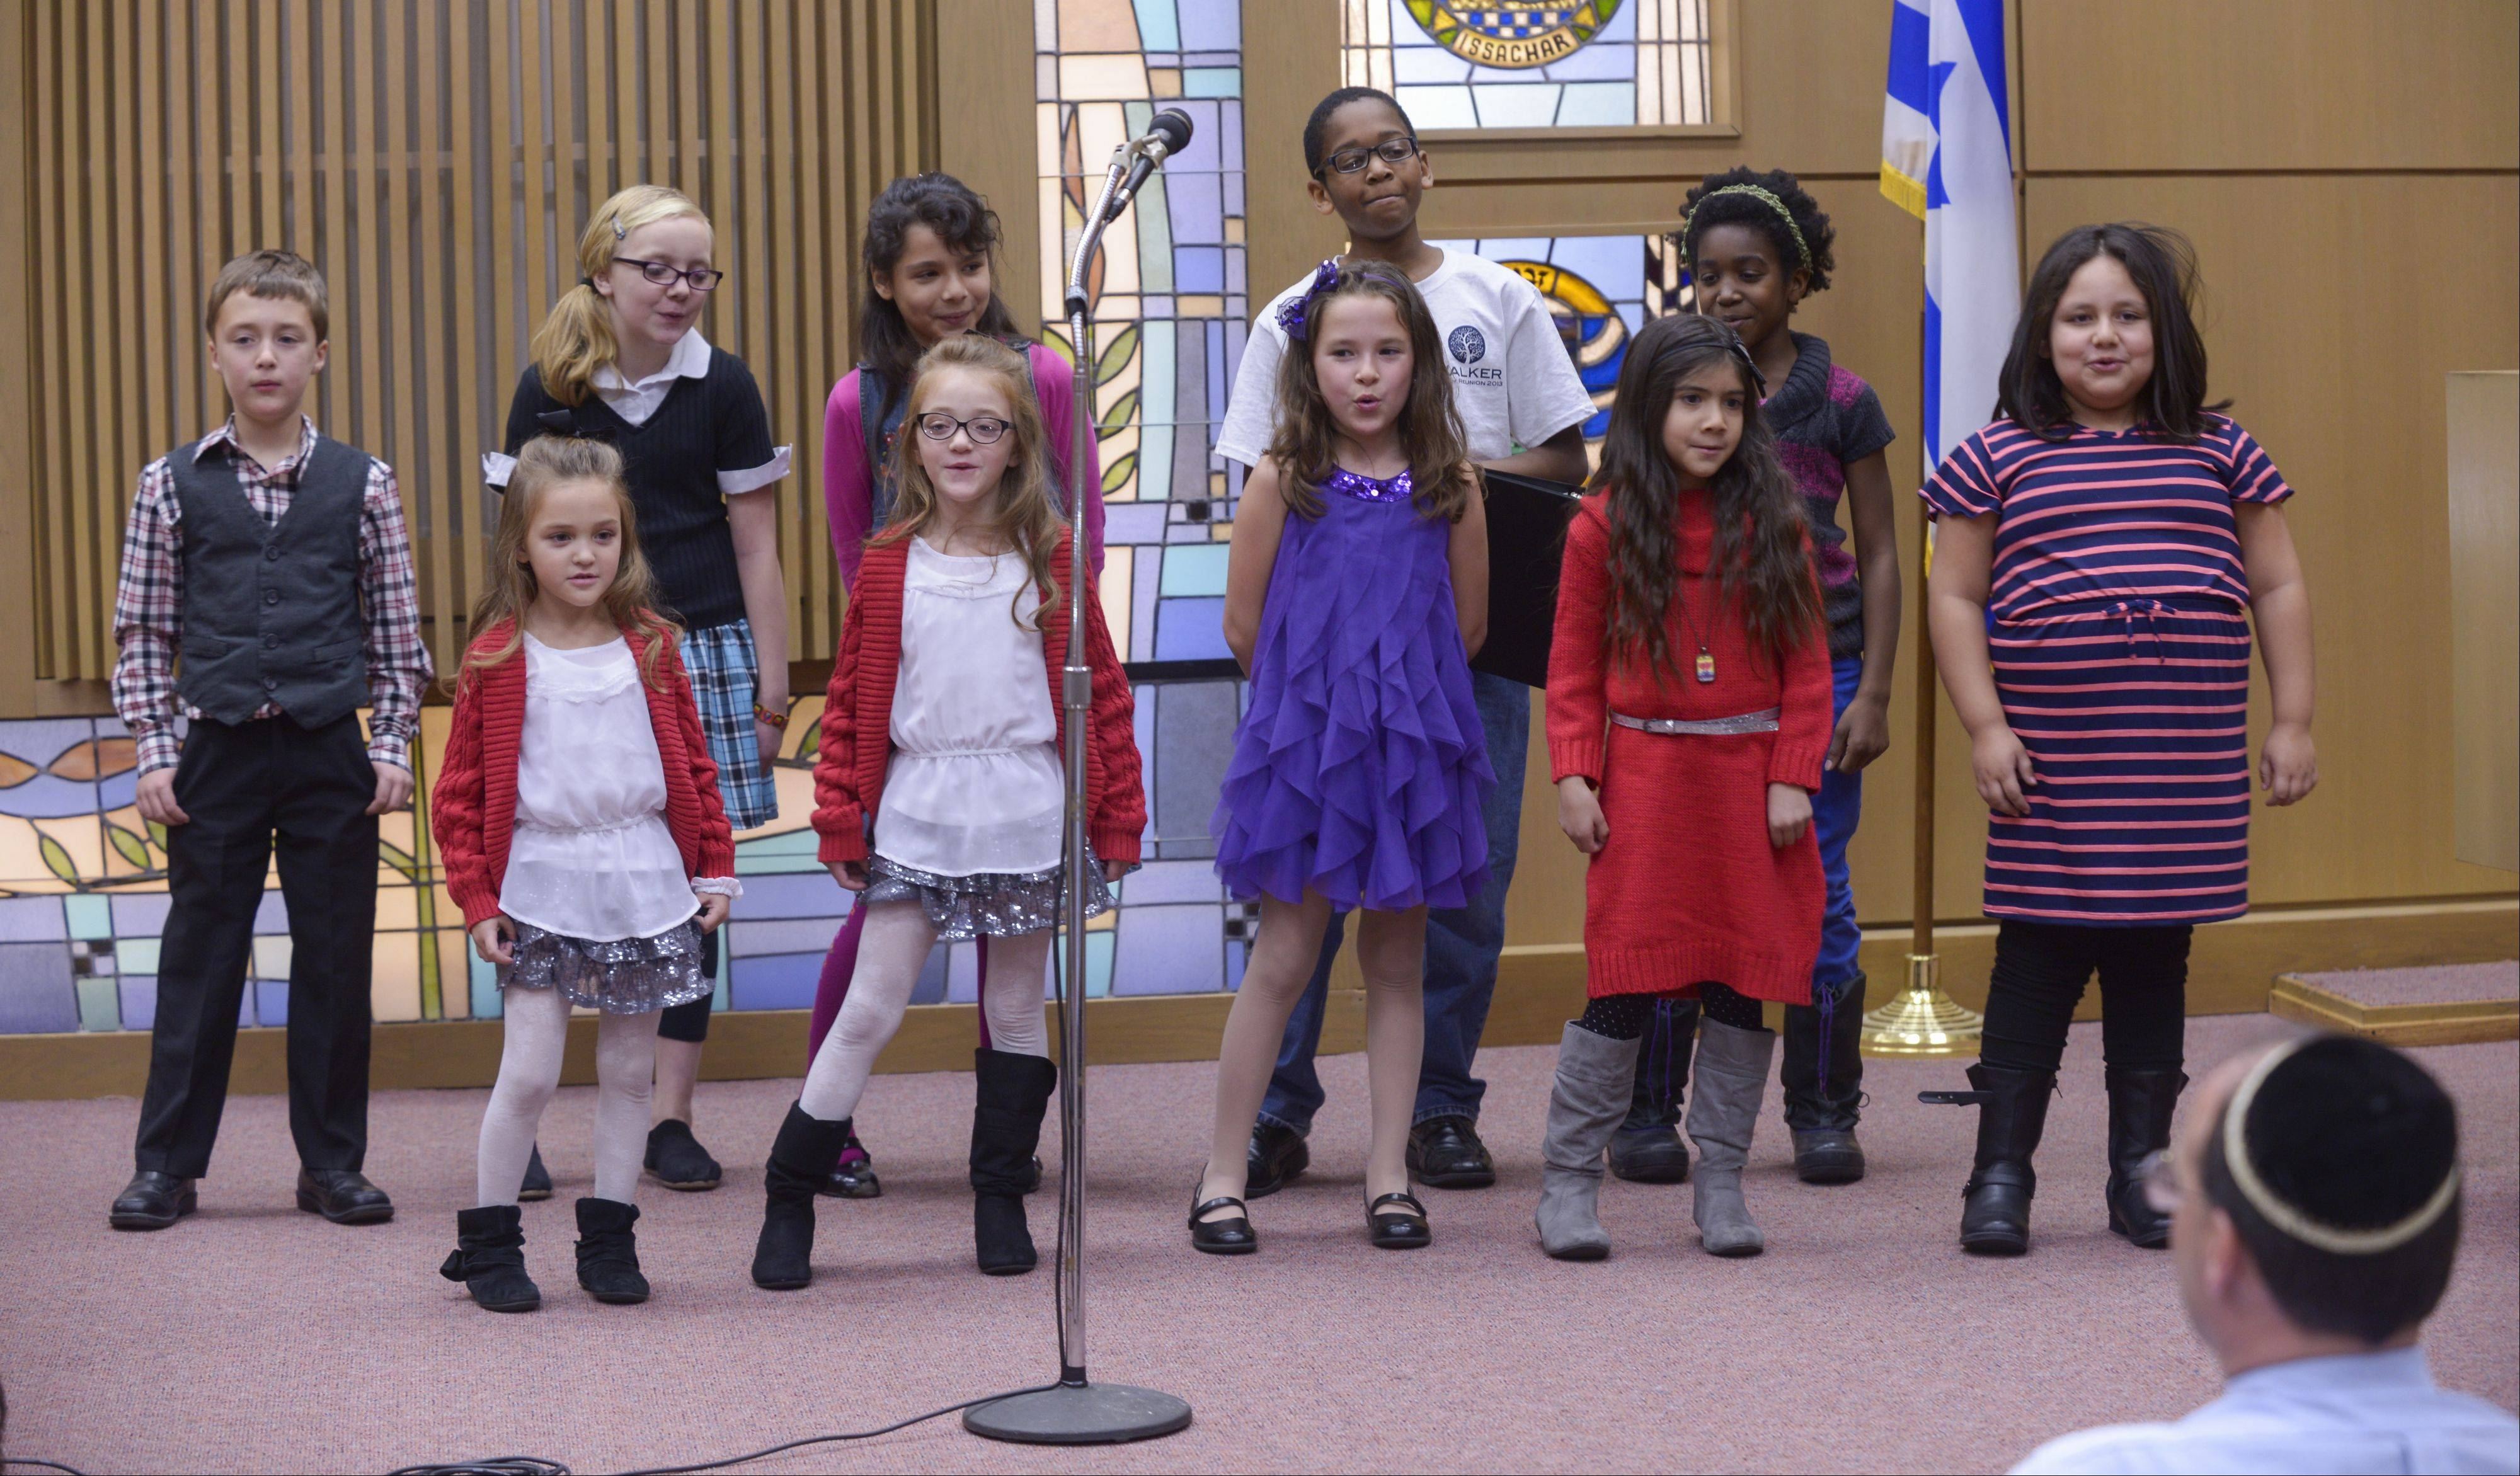 The Interfaith Children's Choir sings during Interfaith Thanksgiving service at Temple B'nai in Aurora. The annual event brings together Aurora area residents from many faiths to give thanks.